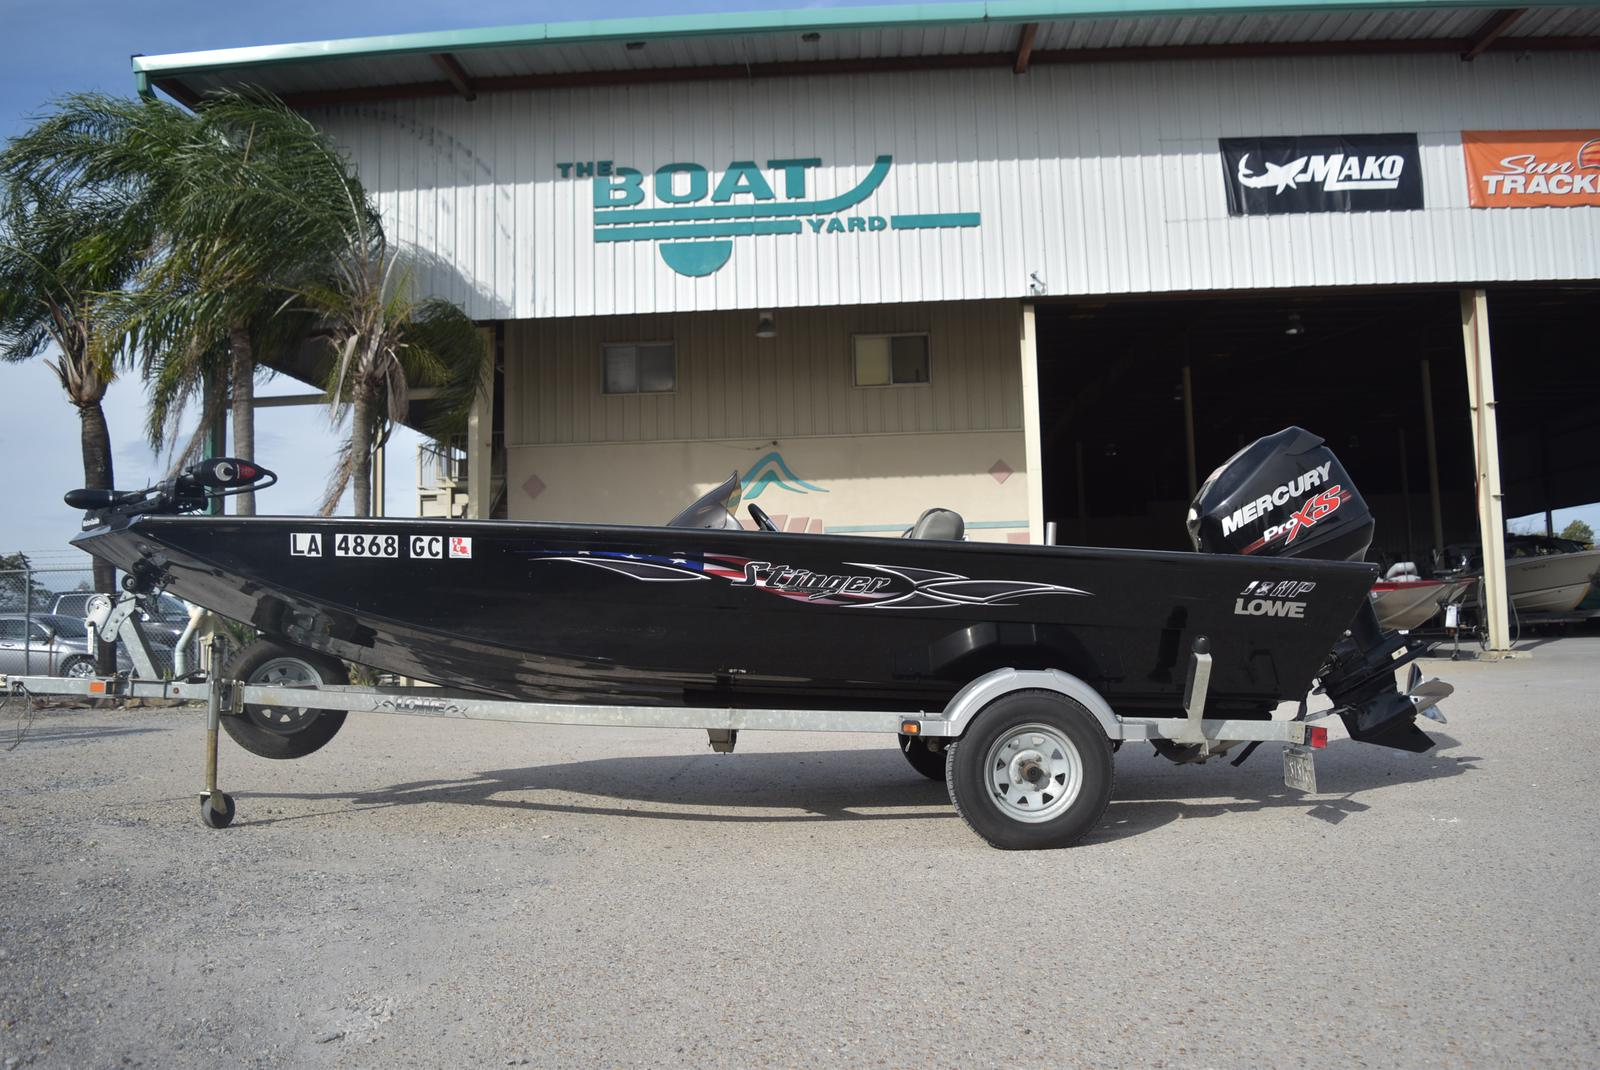 1991 bass tracker pro 17 bass boat for sale in baton rouge - Craigslist baton rouge farm and garden ...